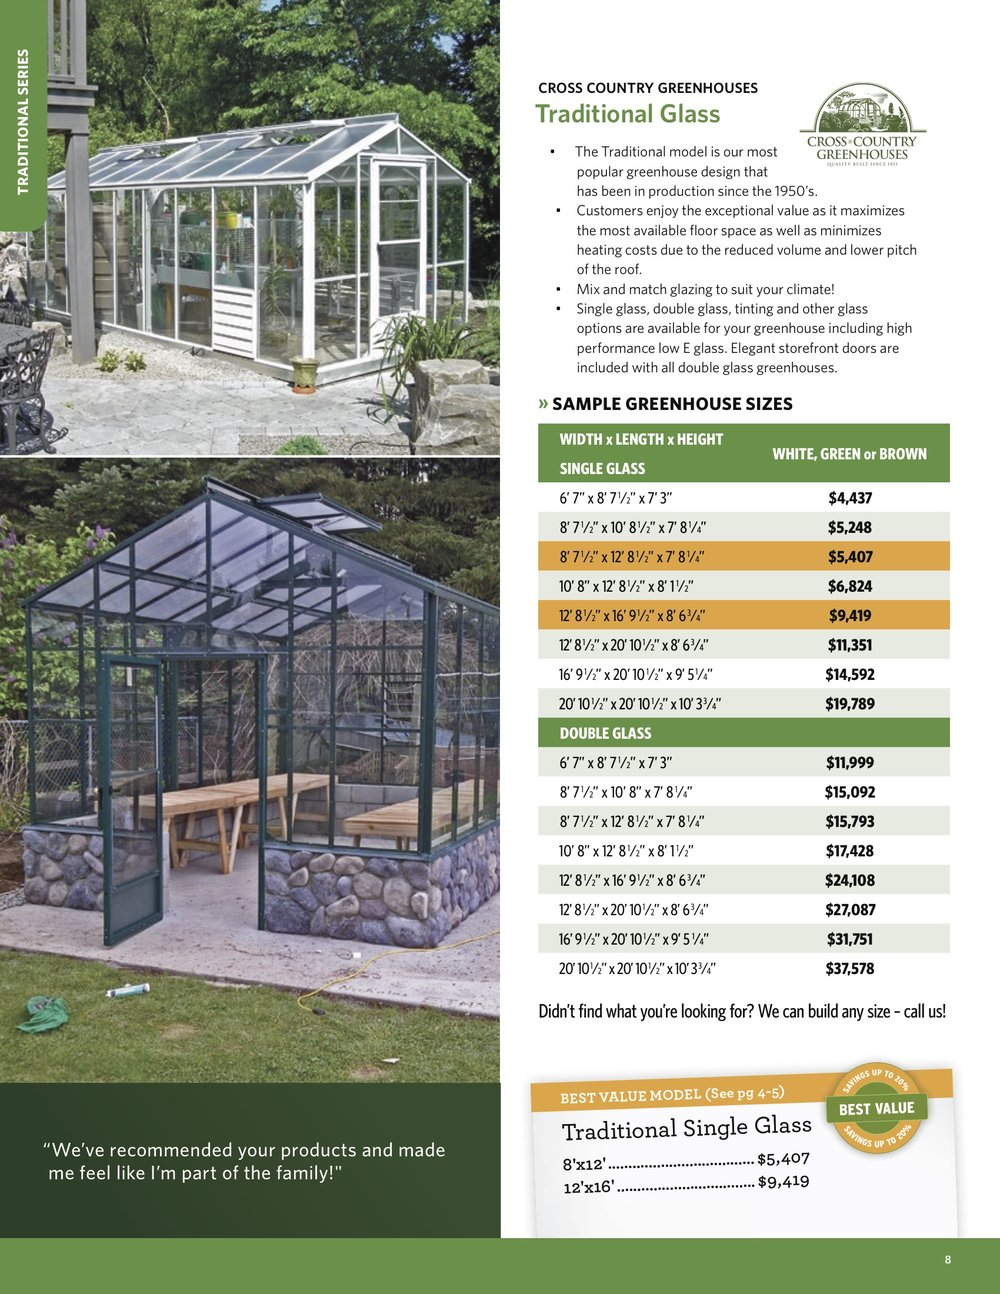 111552_Wisconsin Greenhouse Company_National Catalog (4) (dragged) 7.jpeg